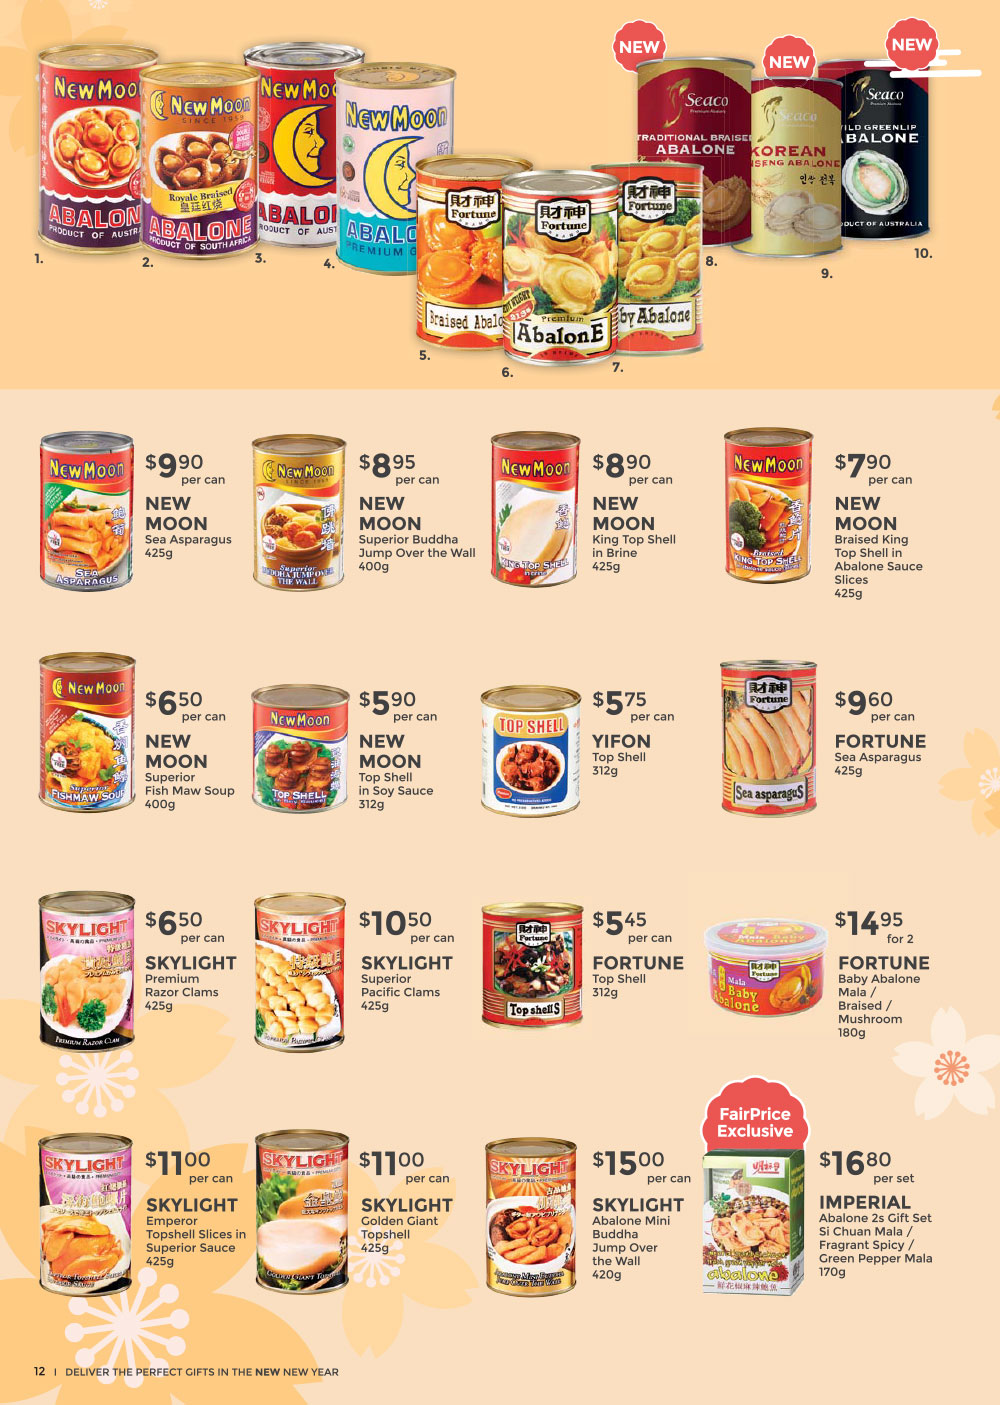 FairPrice Chinese New Year Catalogue 2021 - Celebrate a New New Year - Perfect Gifts